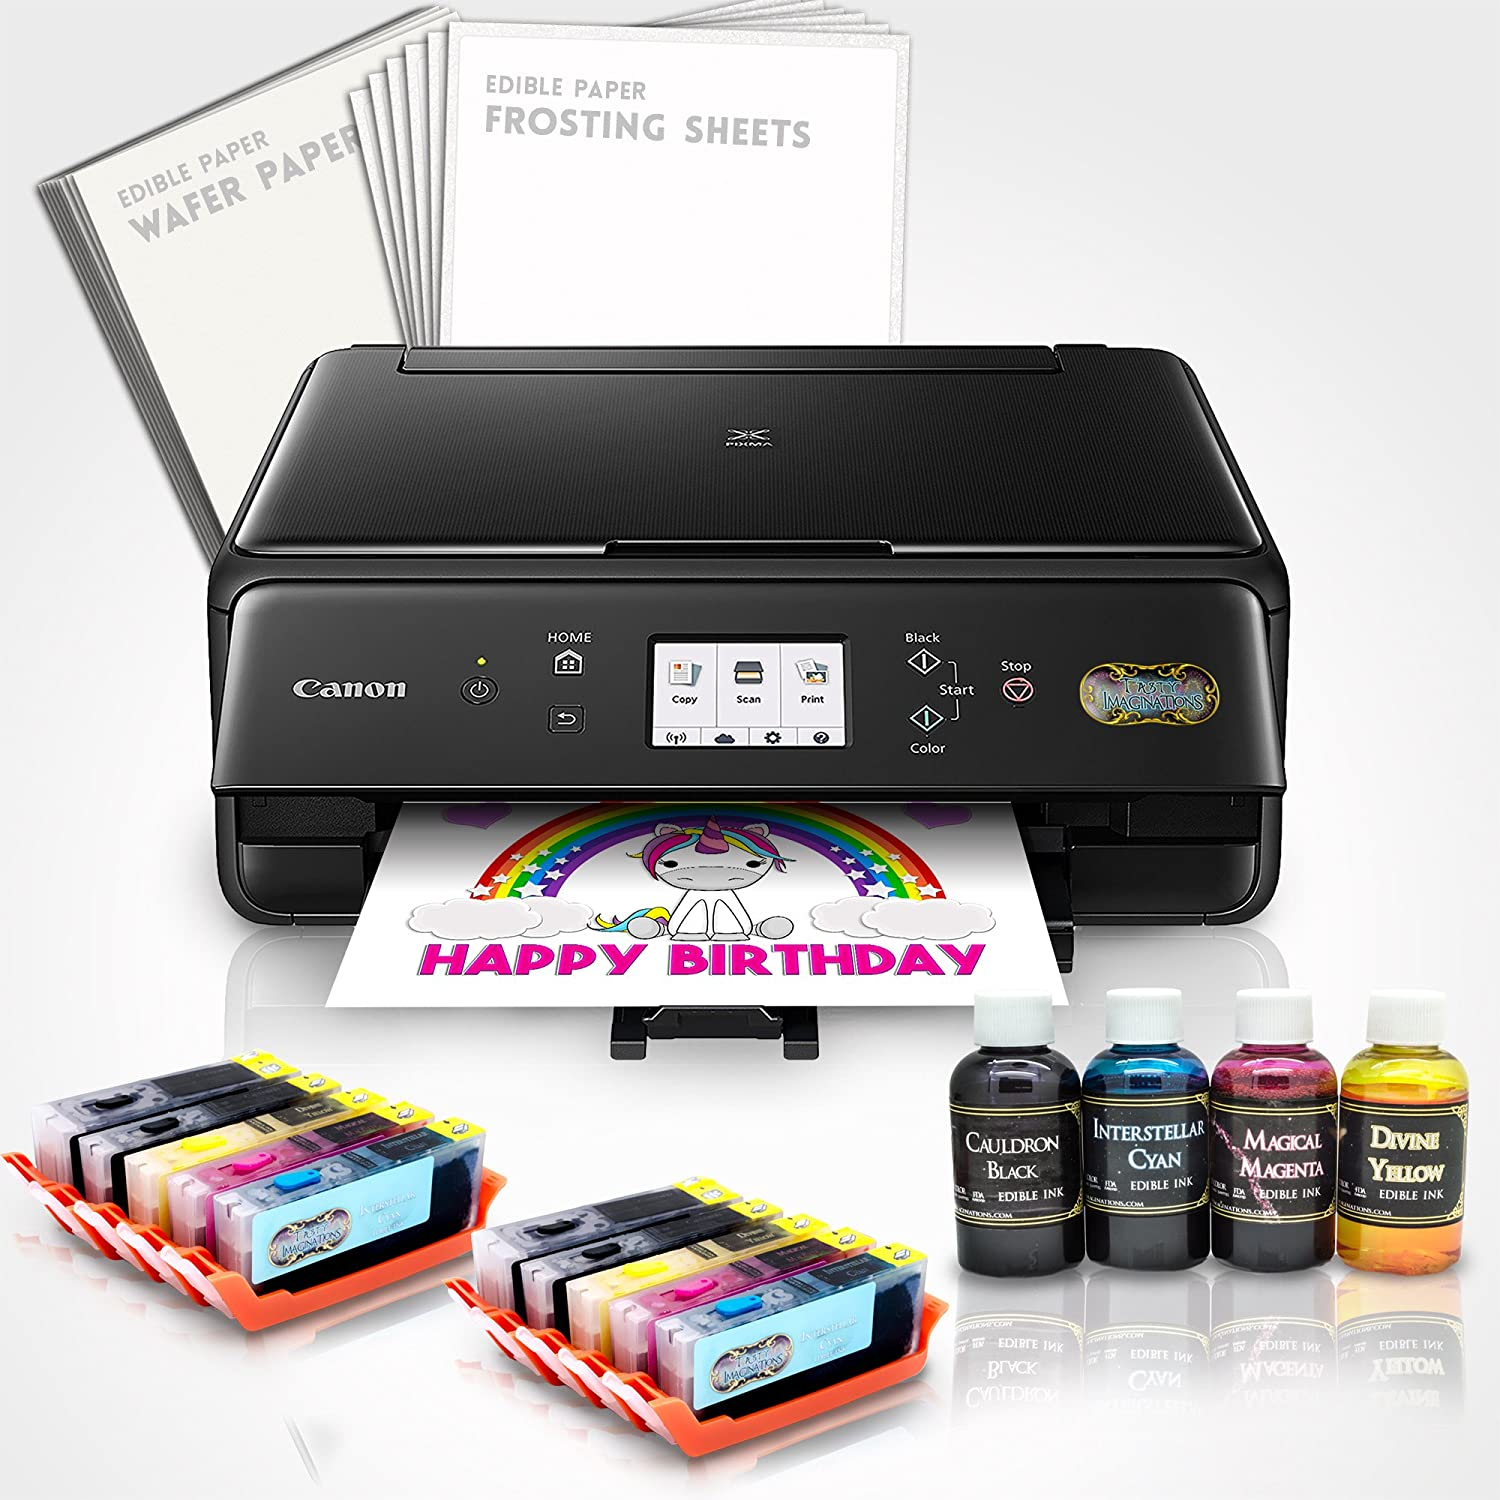 picture about Printable Edible Paper referred to as Edible Printer Offer for Canon - Arrives with Edible Ink Cartridges  Frosting Sheets - Apprentice Offer